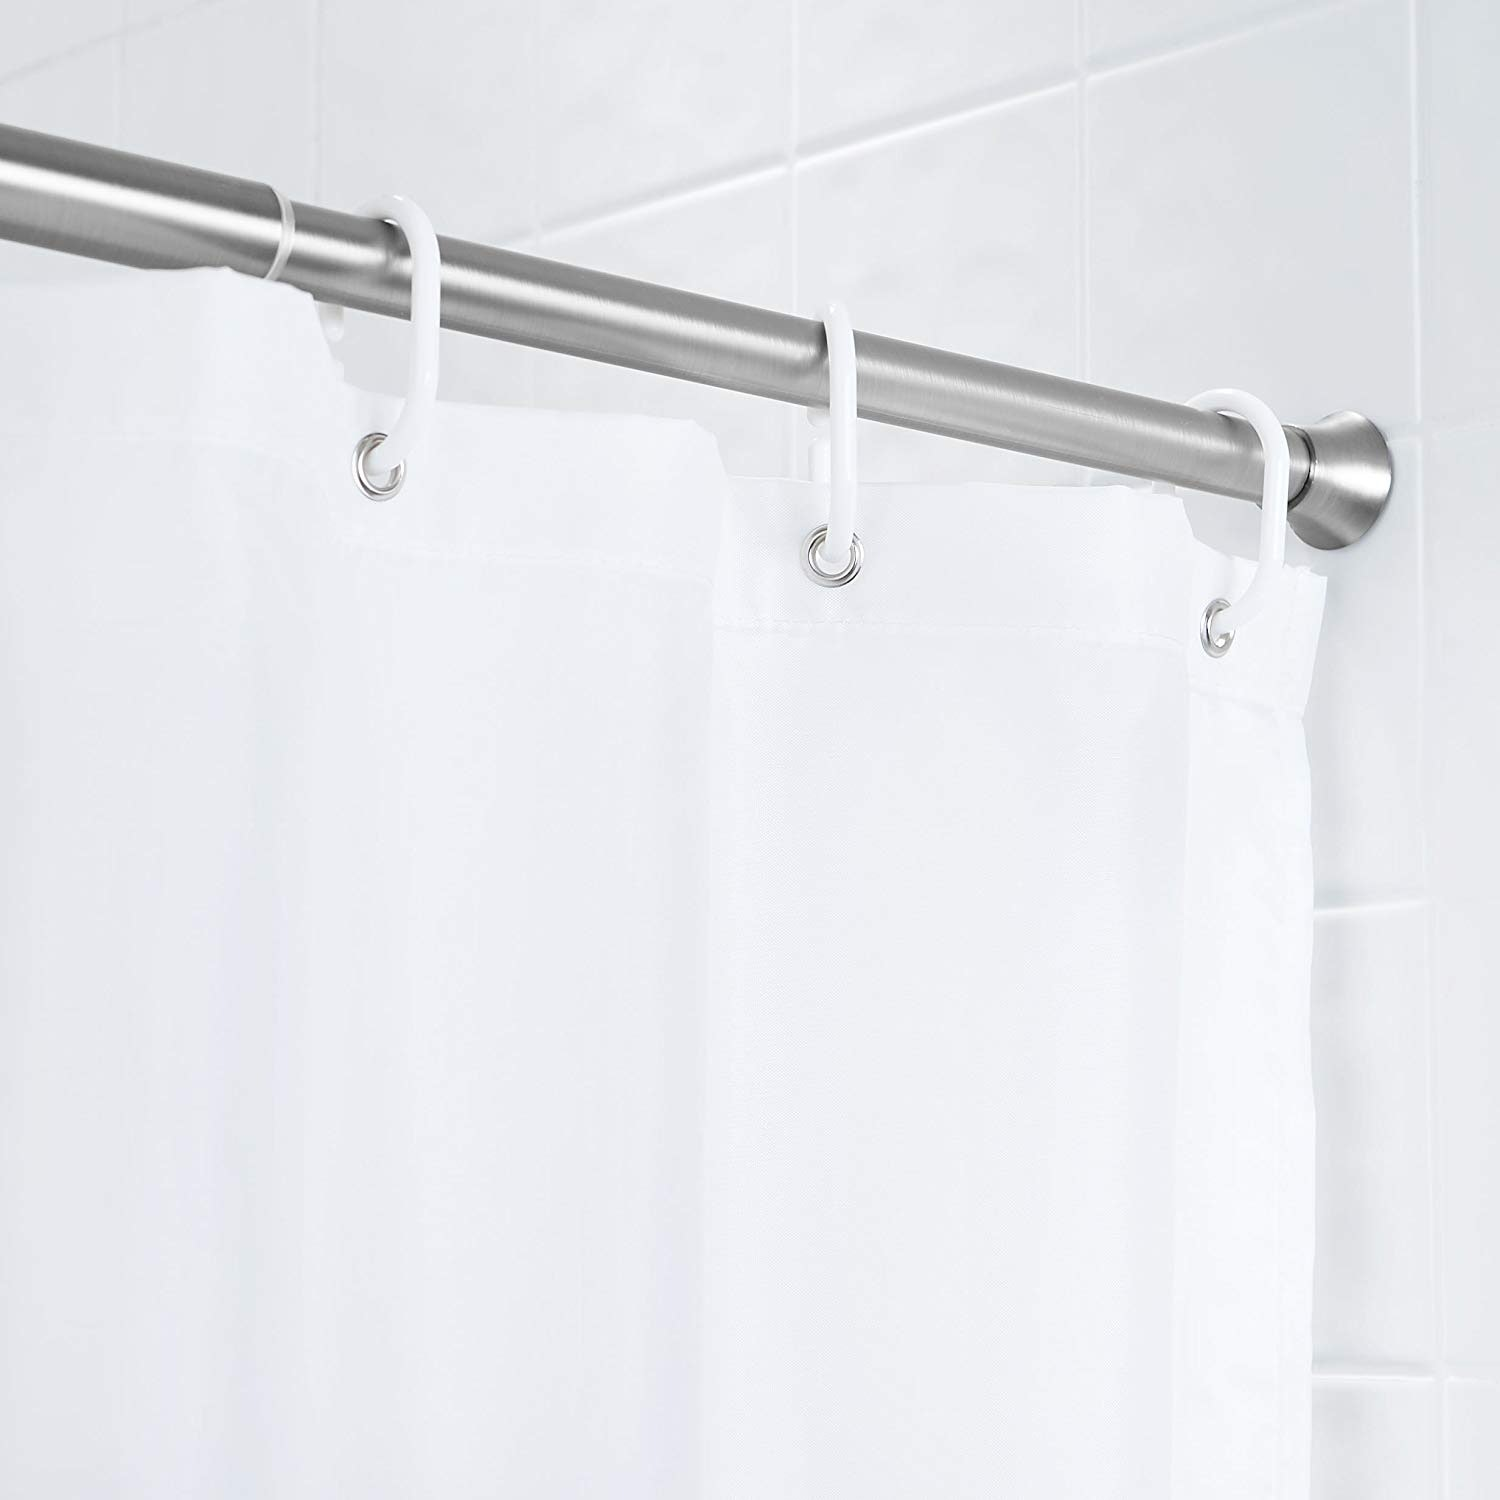 Unique Shower Curtain Rods The 4 Best Tension Shower Rods